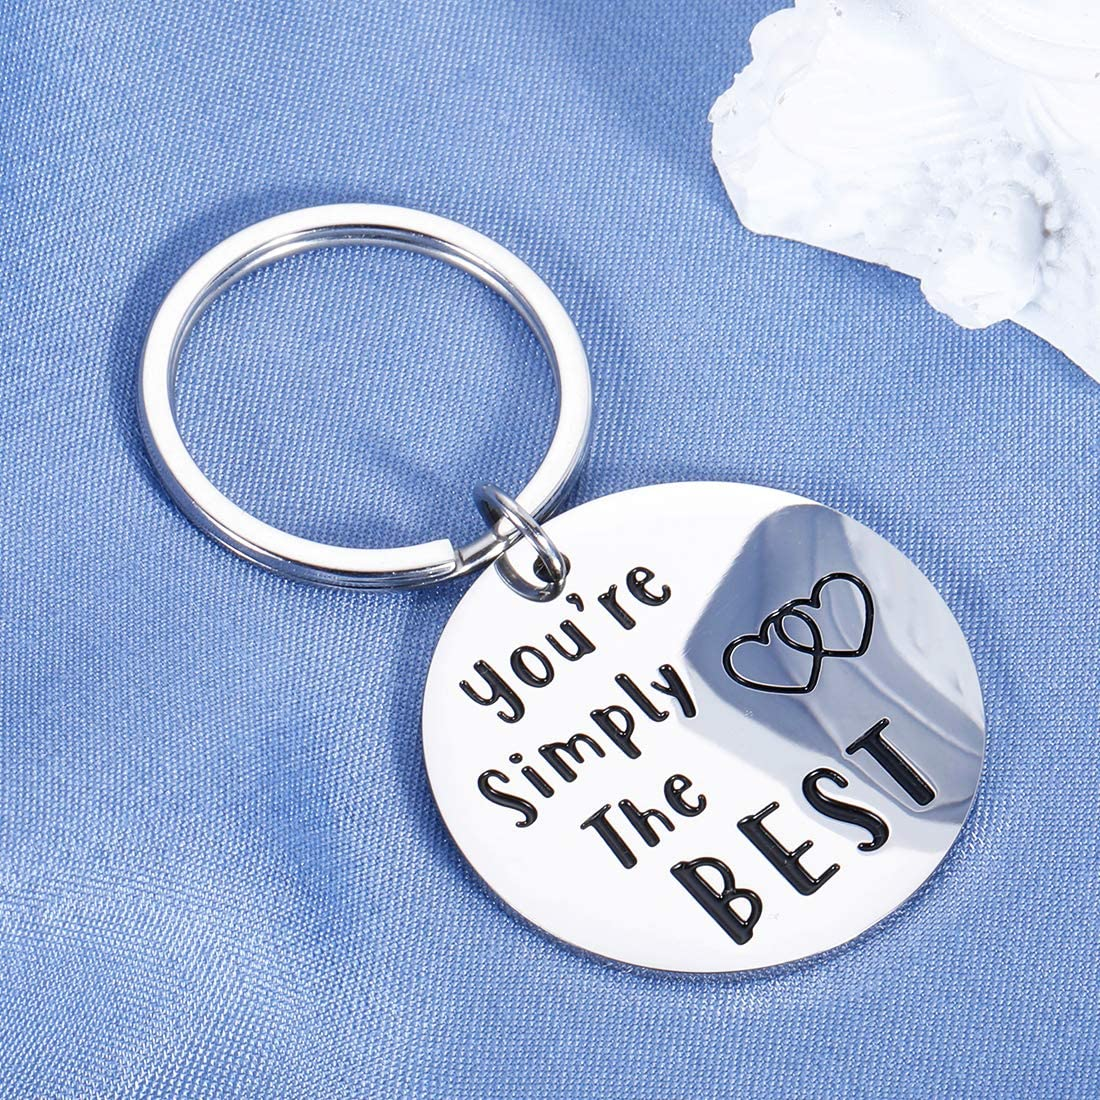 Couple Gifts for Him Her Wedding Anniversary Keychain for Boyfriend Girlfriend Birthday Best Friend Graduation for Fans Lover Husband Wife Women Men You're Simply The Best Keyring